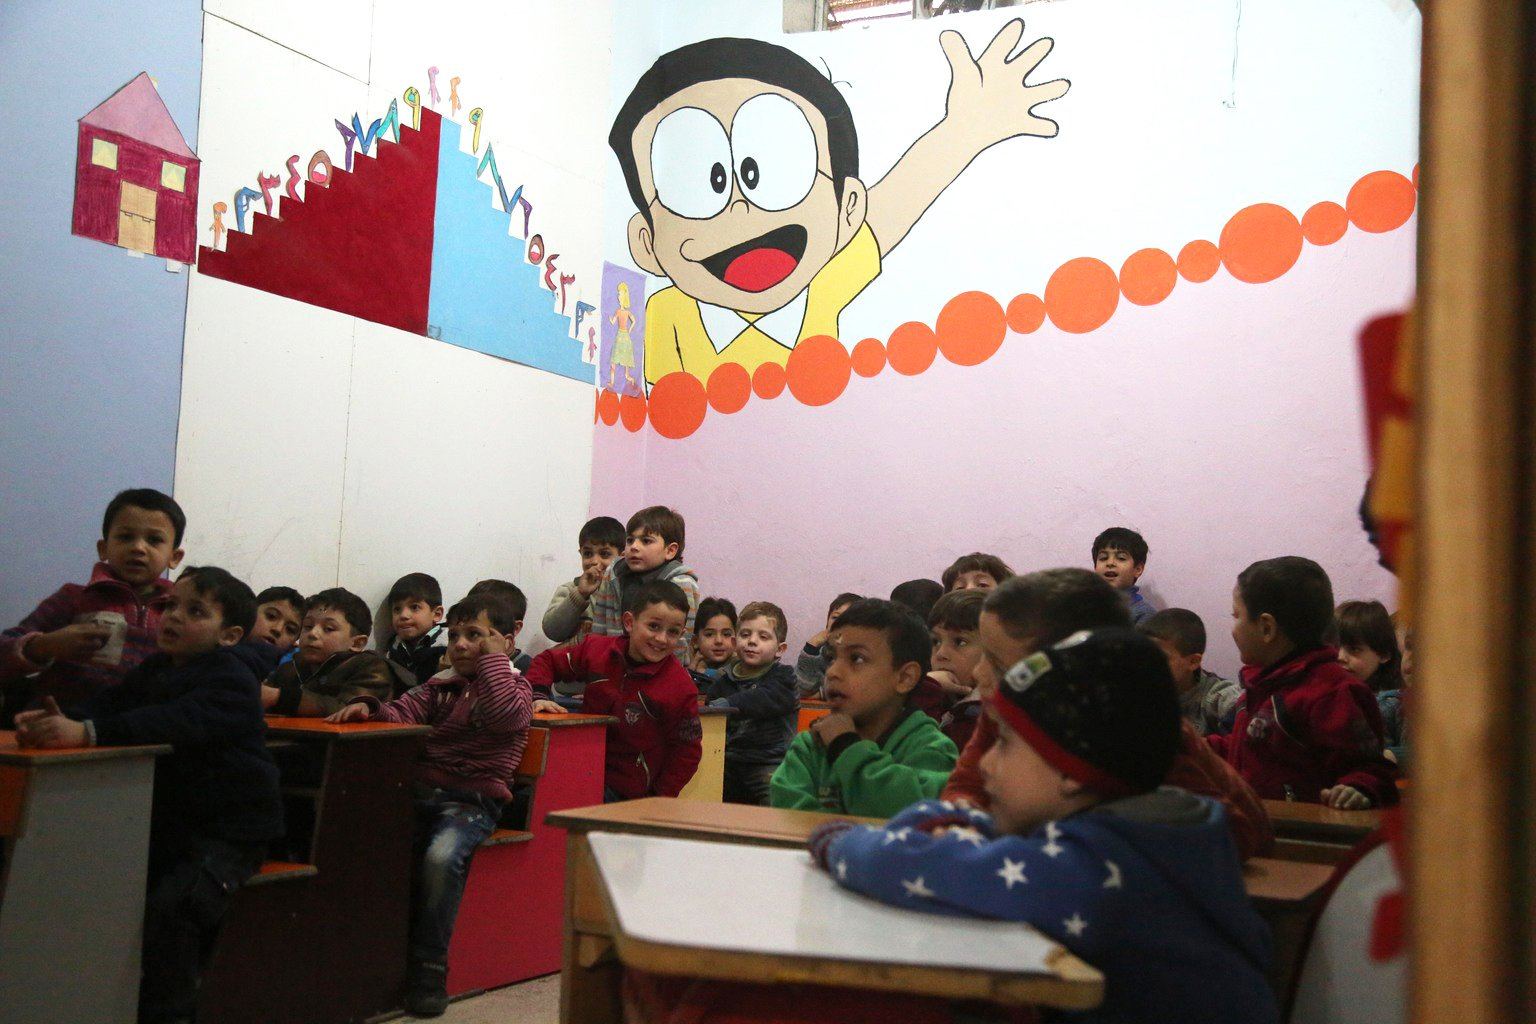 EducationAroundTheWorld_Syria_003.jpg